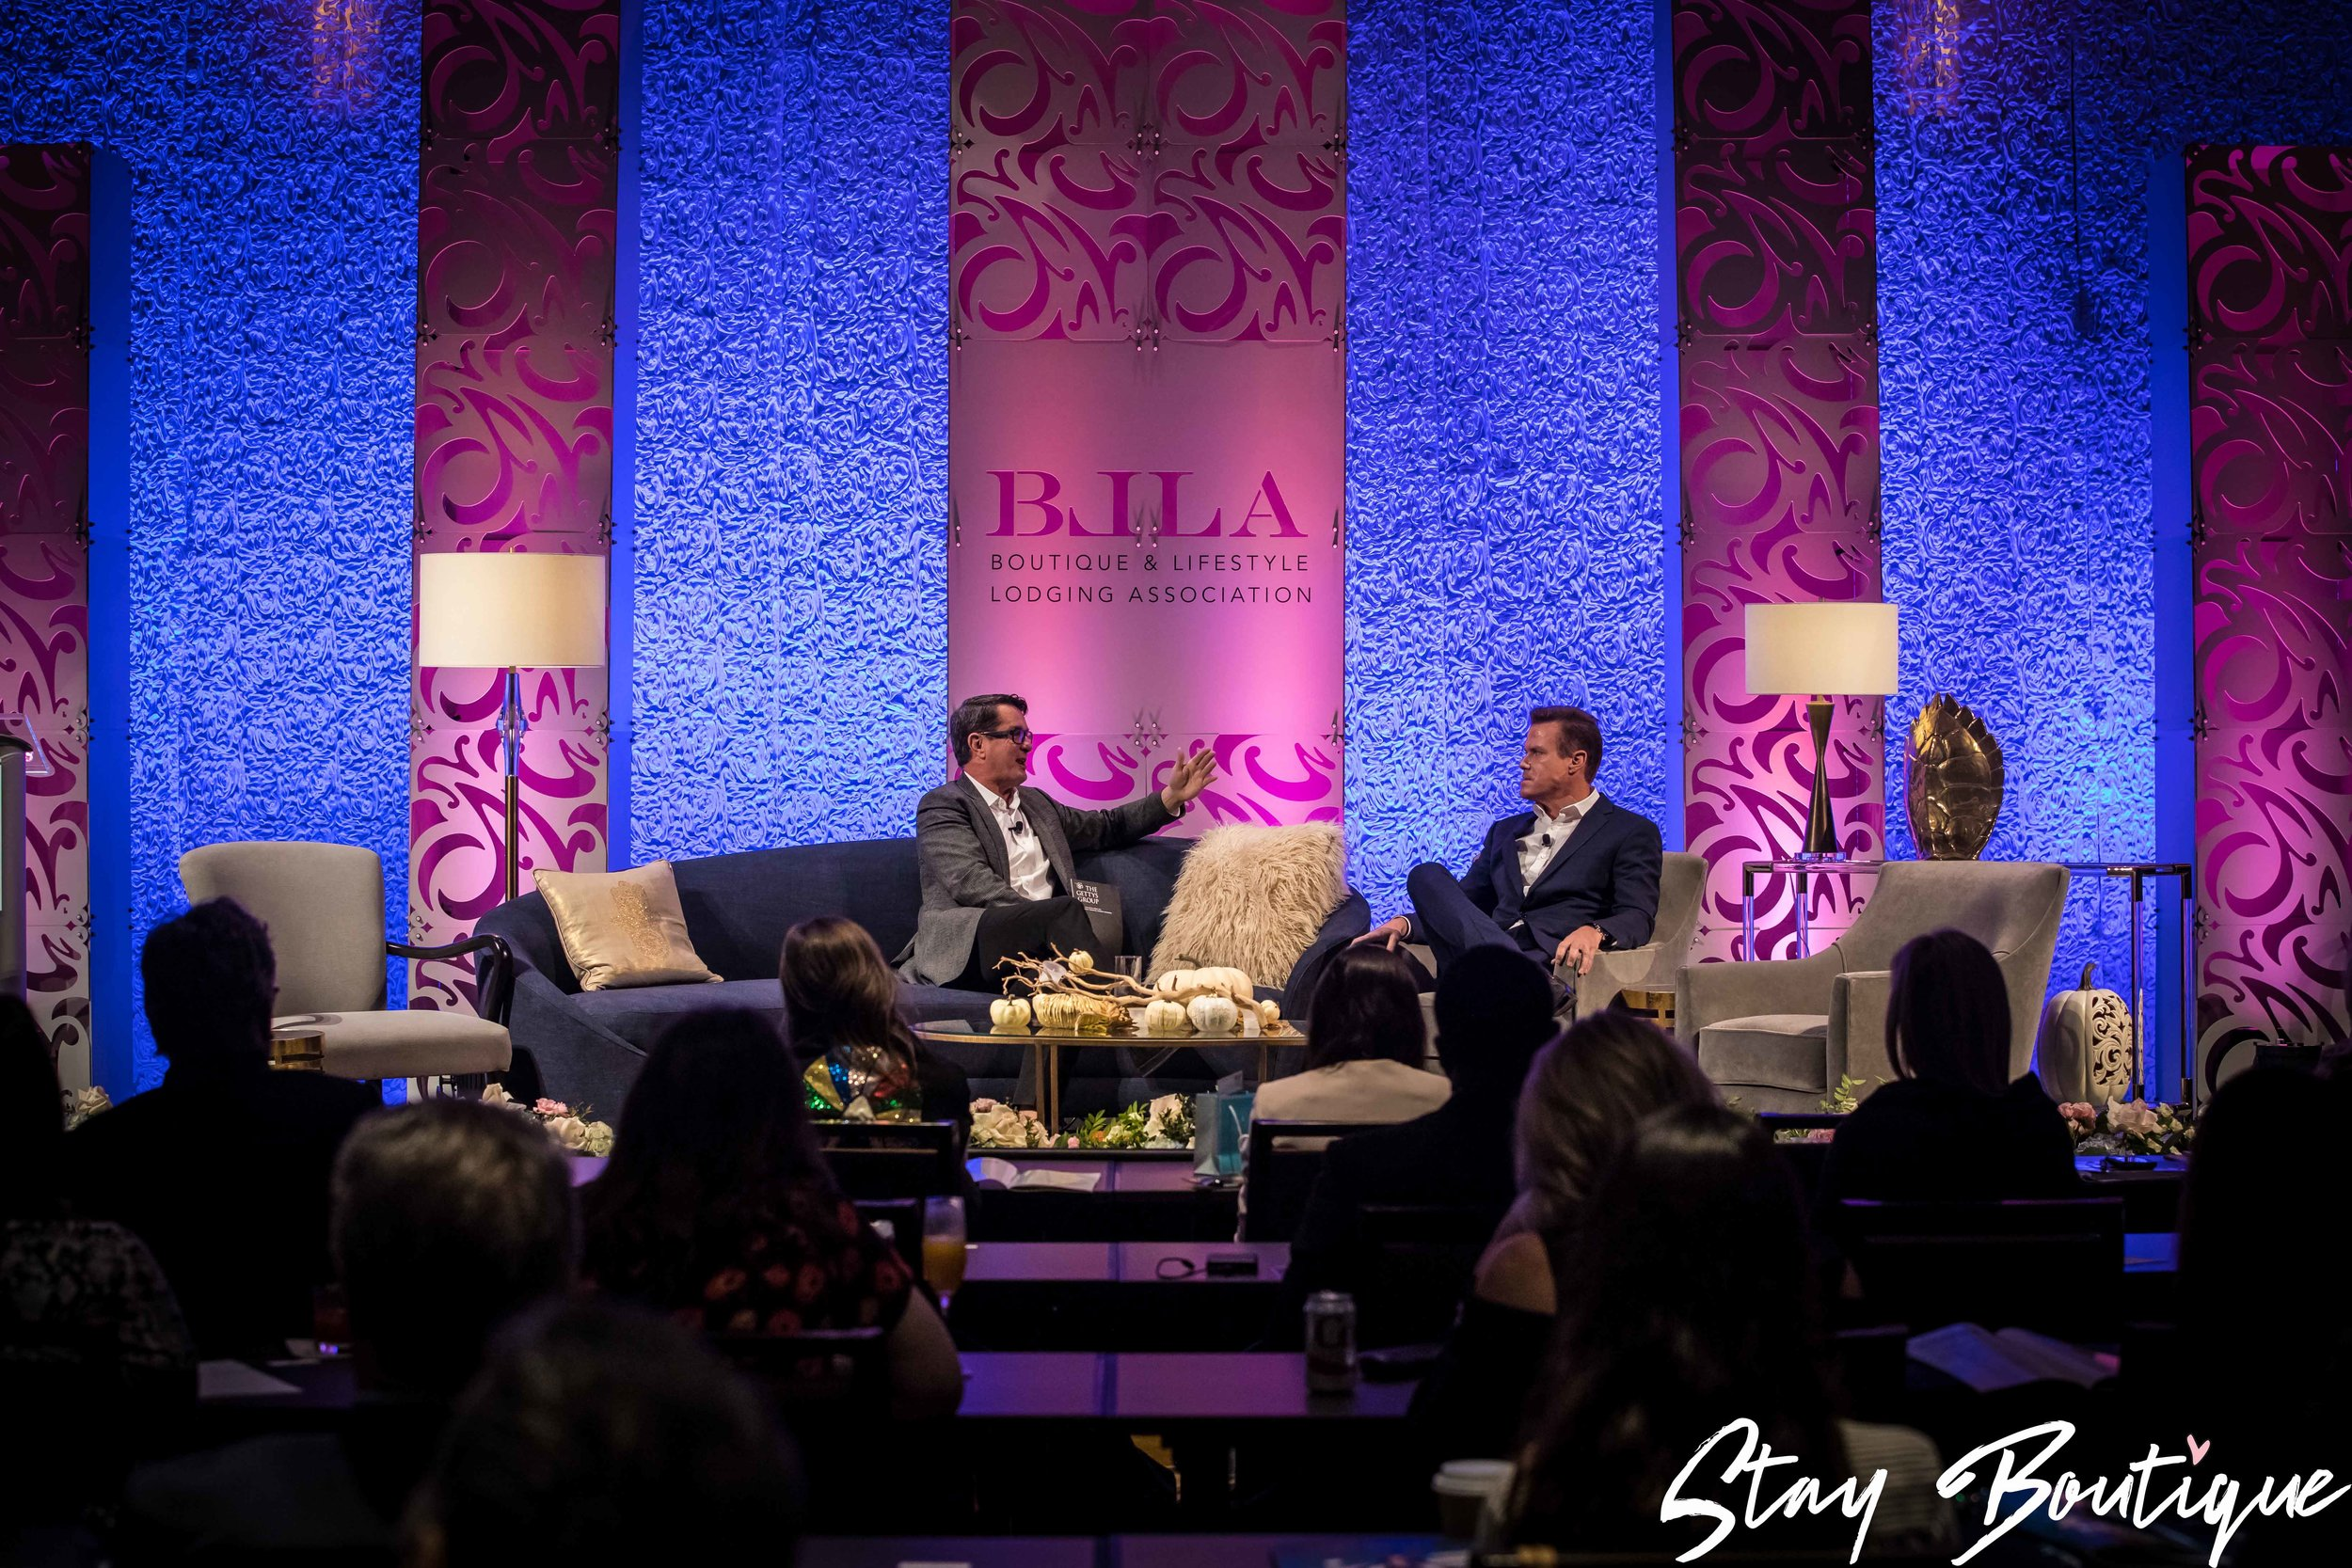 Grant King _ Andrew Fay on stage at the 2017 Stay Boutique Conference.jpg